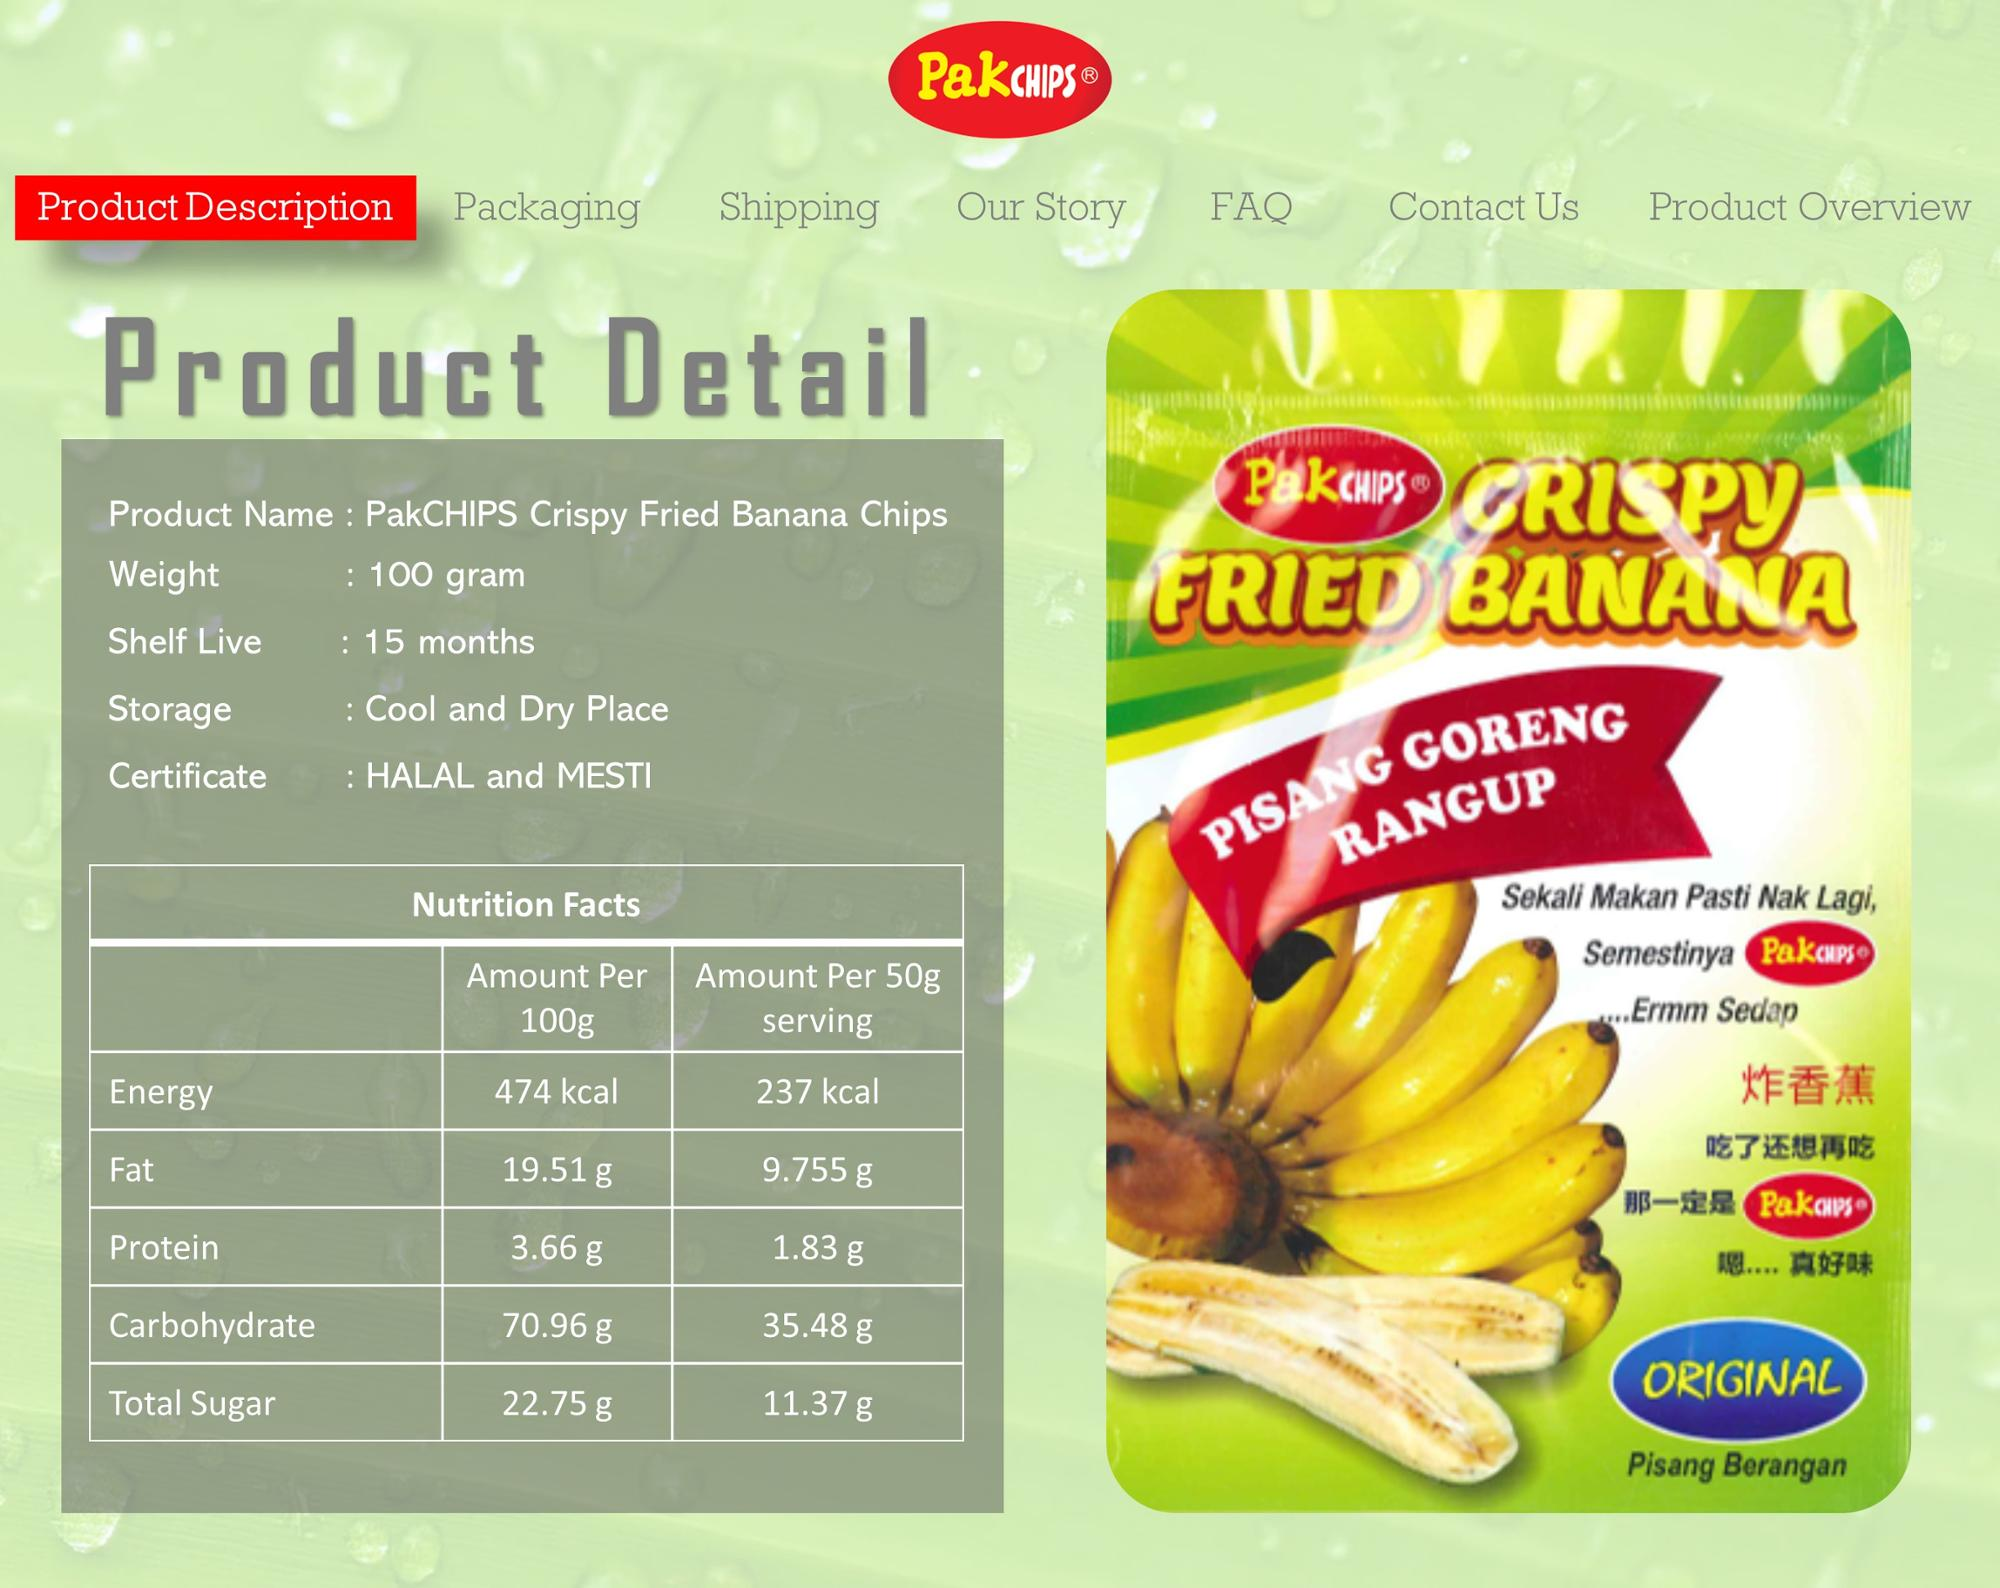 Obst Snacks Super September Förderung Vakuum Gebraten Banana Obst Snacks 3 52 Unze Buy Super September Förderung Vakuum Gebraten Banana Chips Obst Snacks